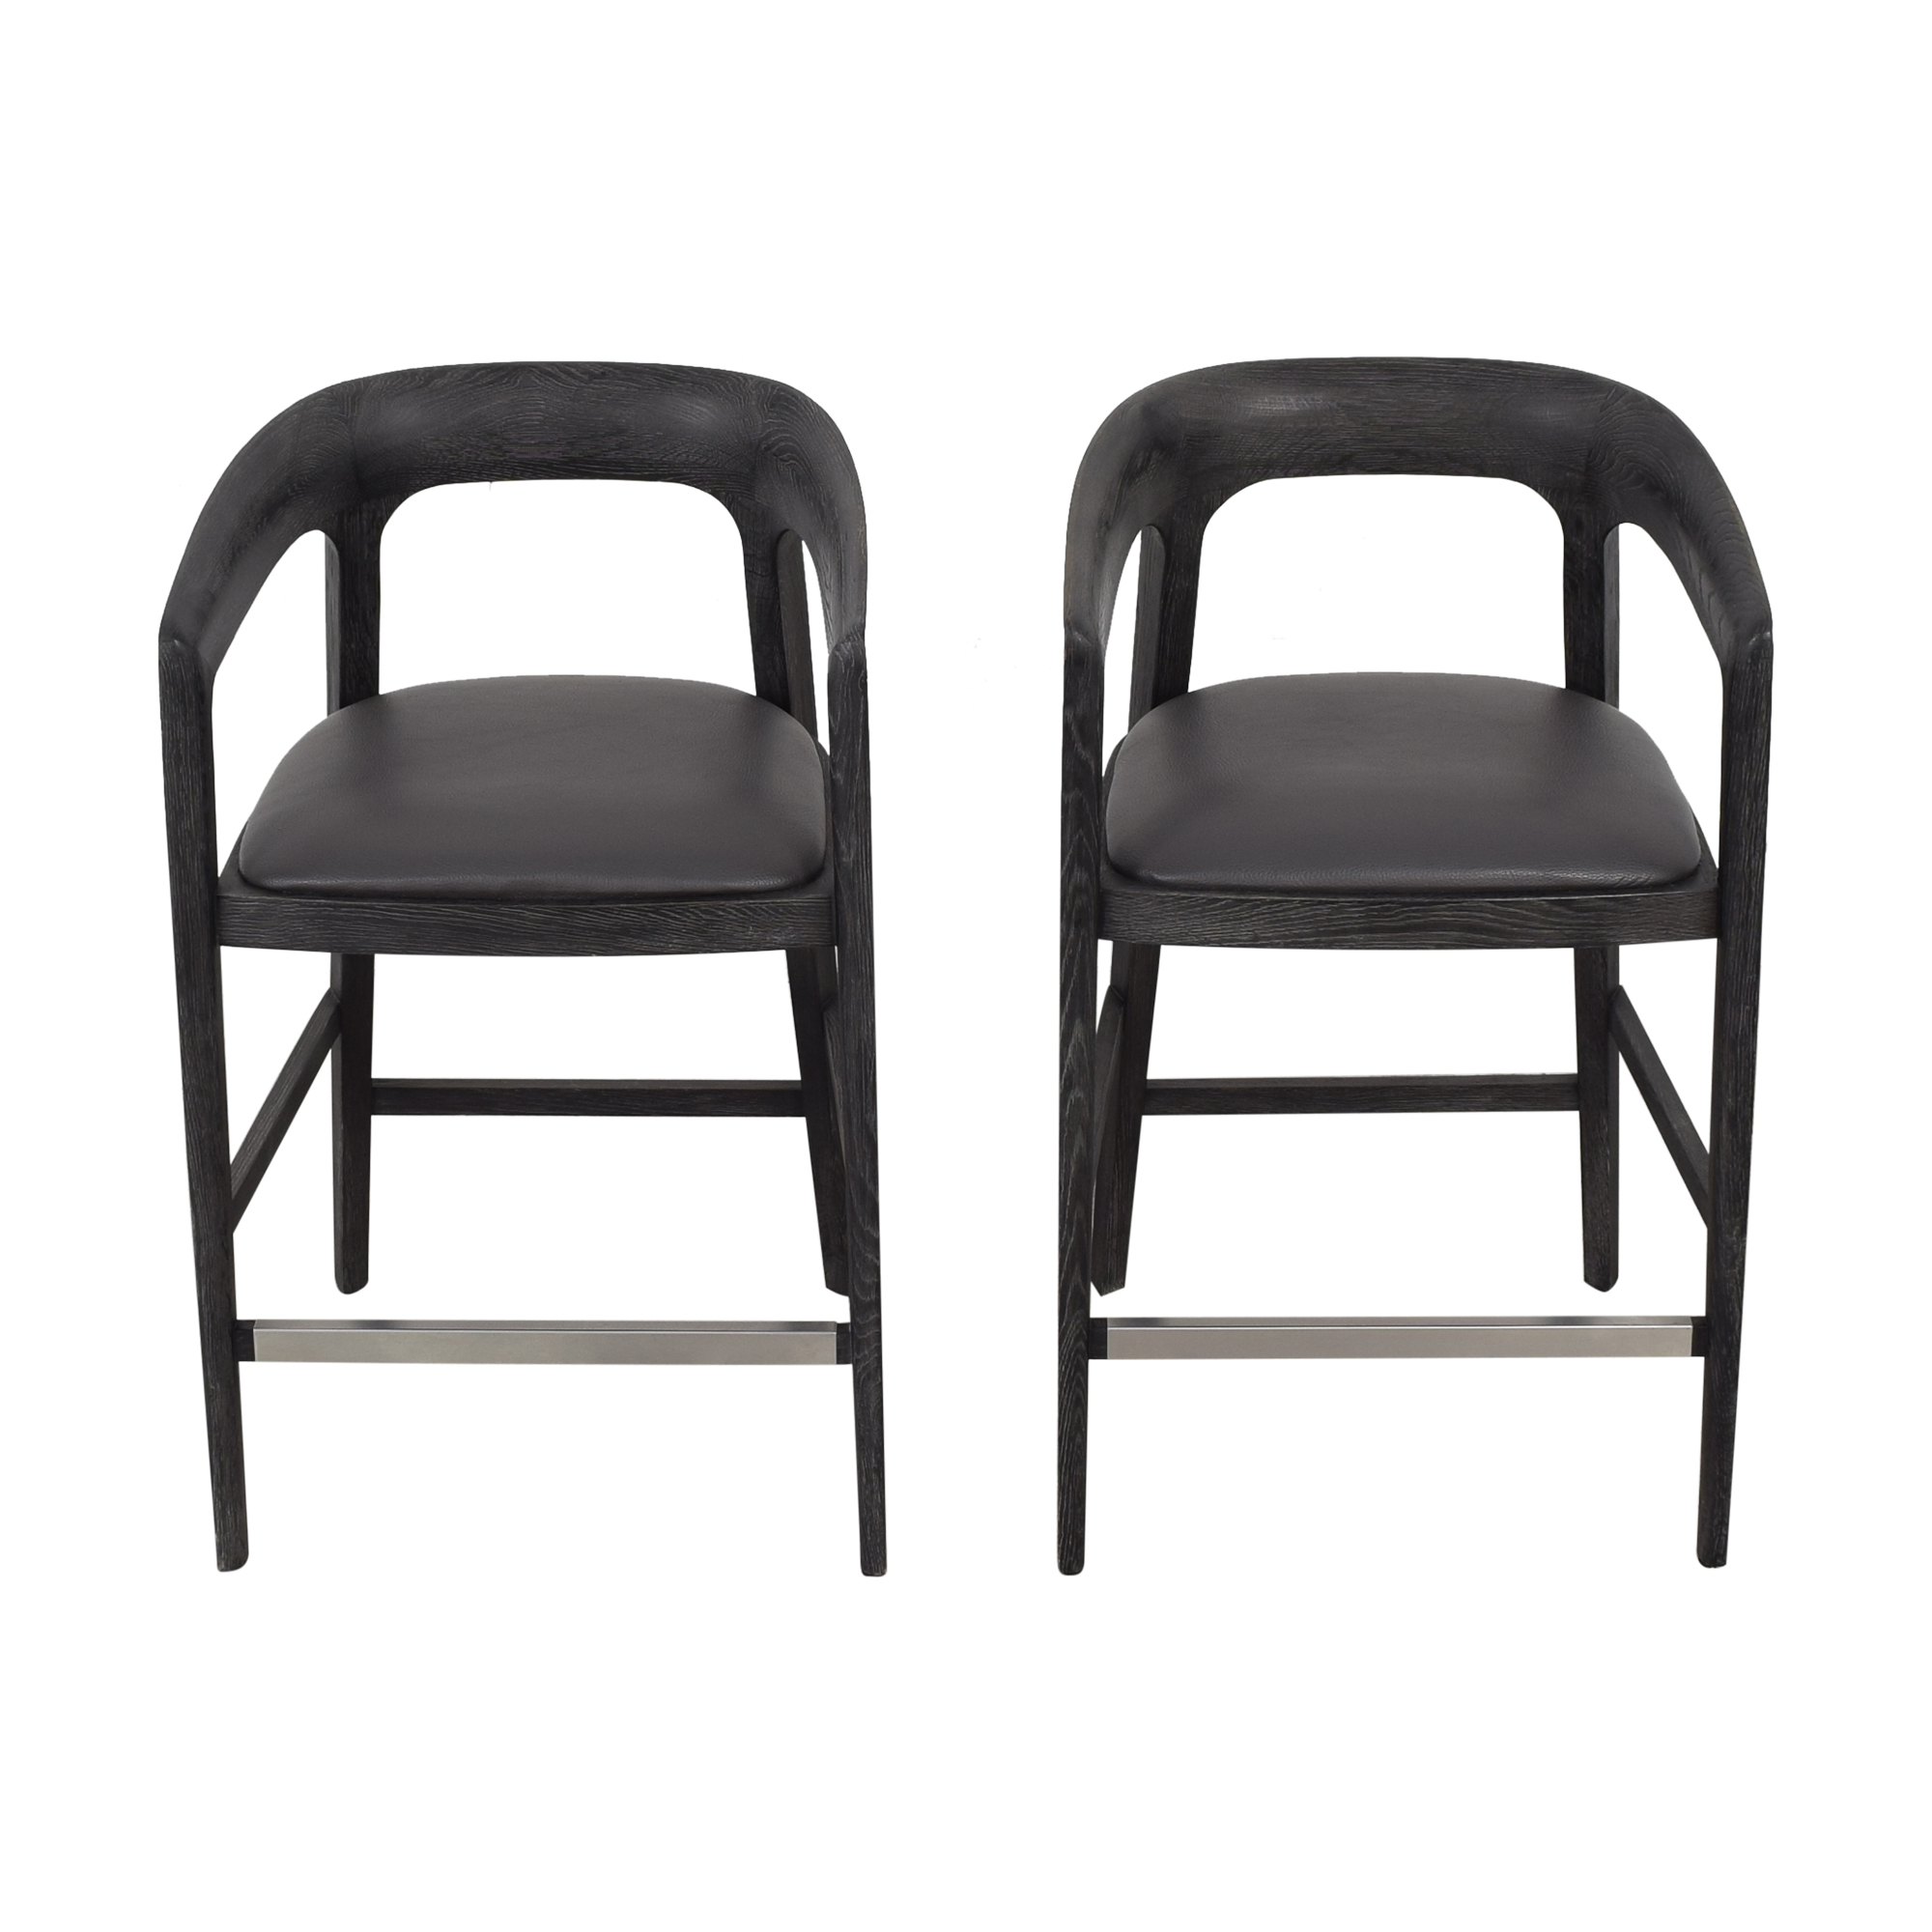 Interlude Home Interlude Home Kendra Counter Stools used